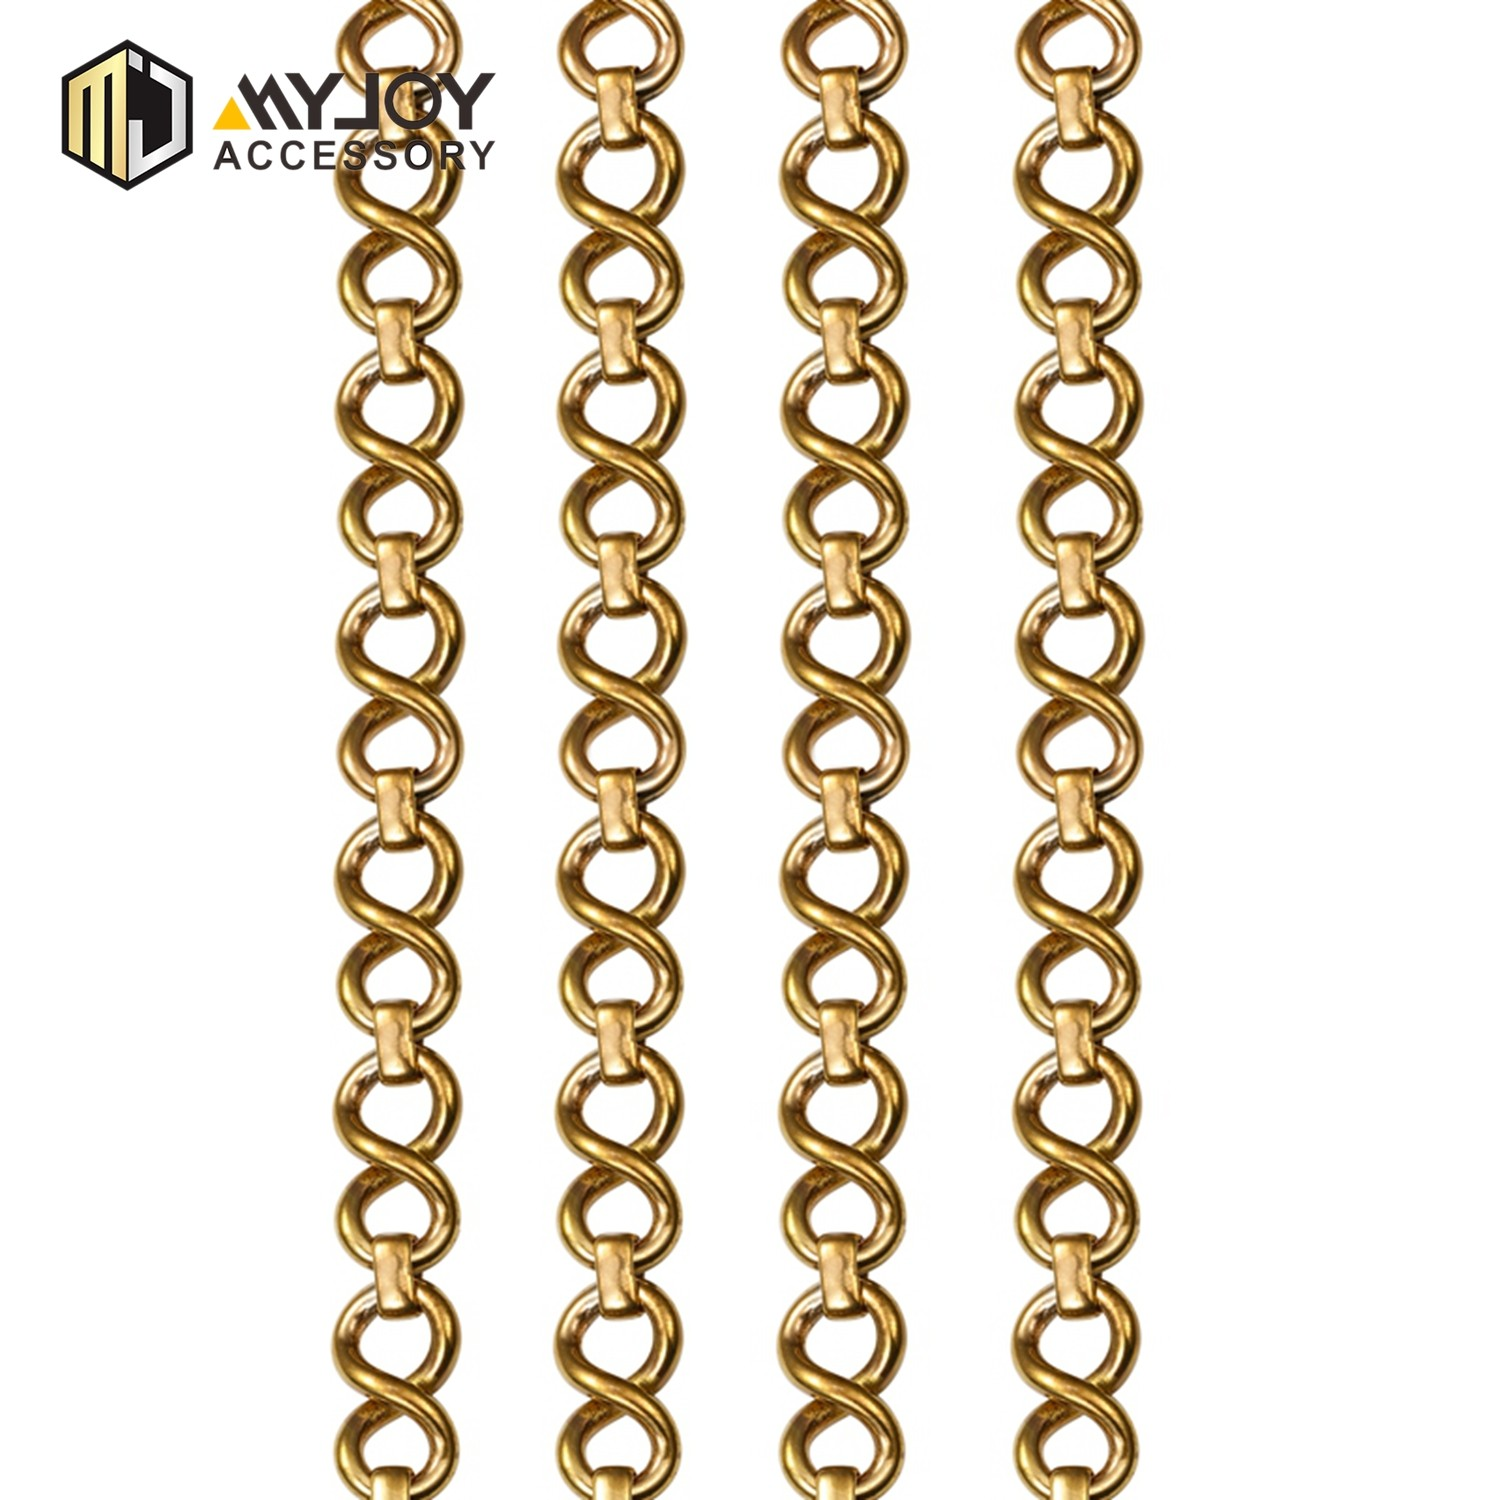 MYJOY Wholesale handbag strap chain Supply for bags-2